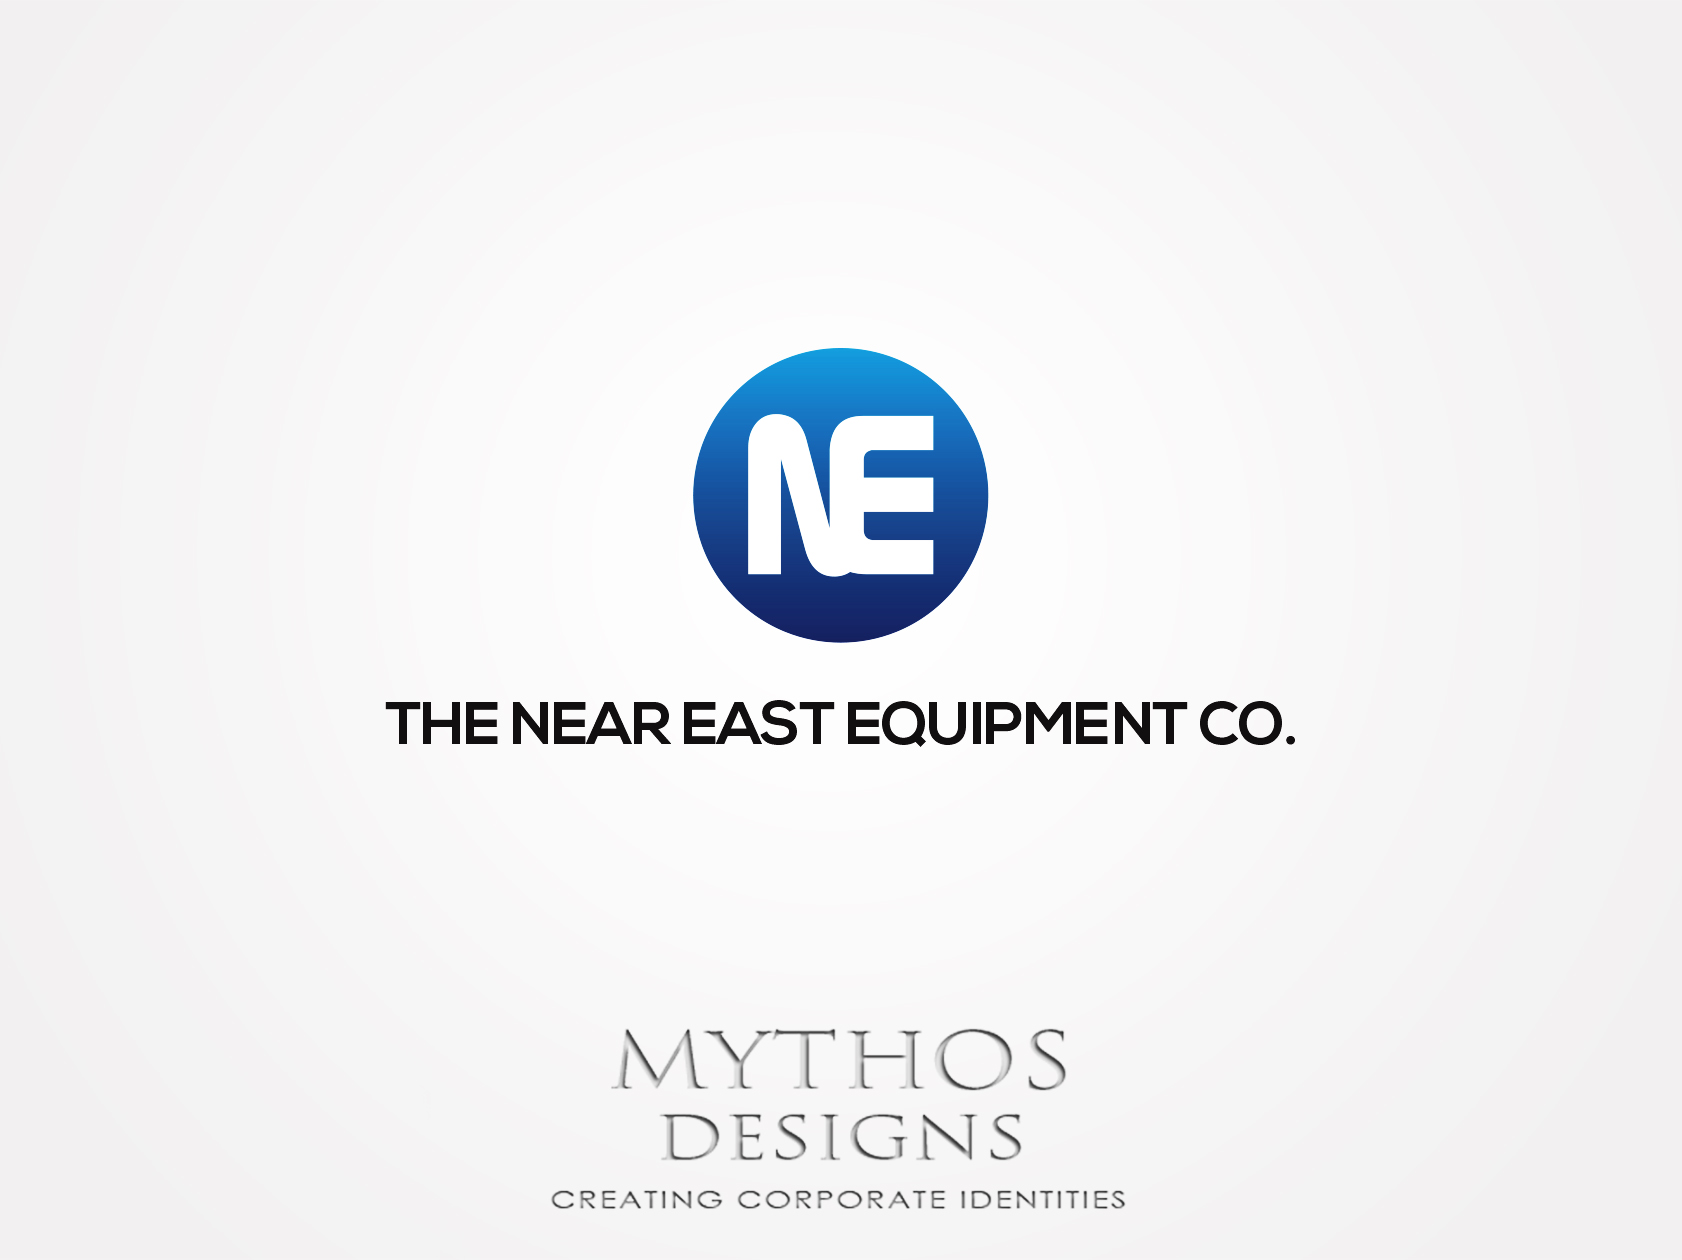 Logo Design by Mythos Designs - Entry No. 152 in the Logo Design Contest Imaginative Logo Design for The Near East Equipment Co..